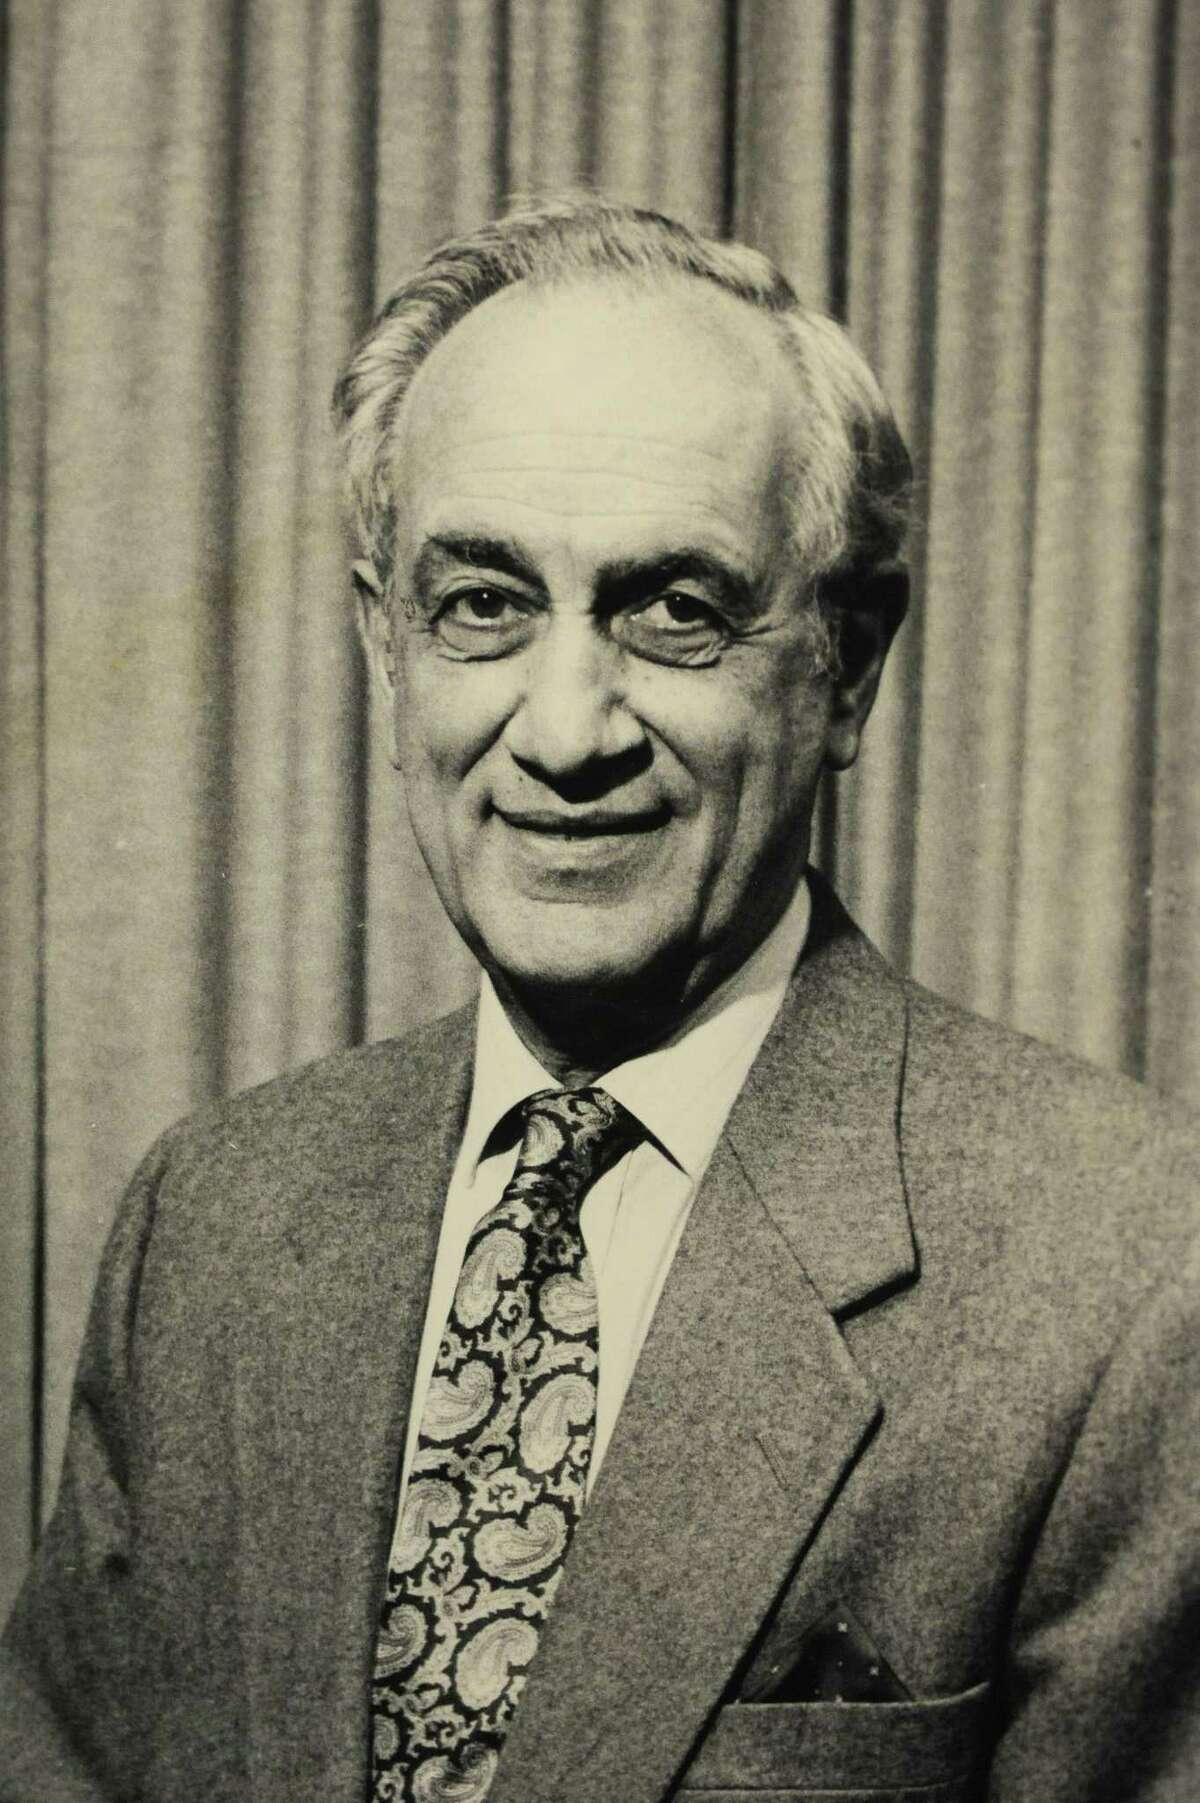 The late Thomas Pia (pictured), sewed space suits for astronauts while living in Stamford.